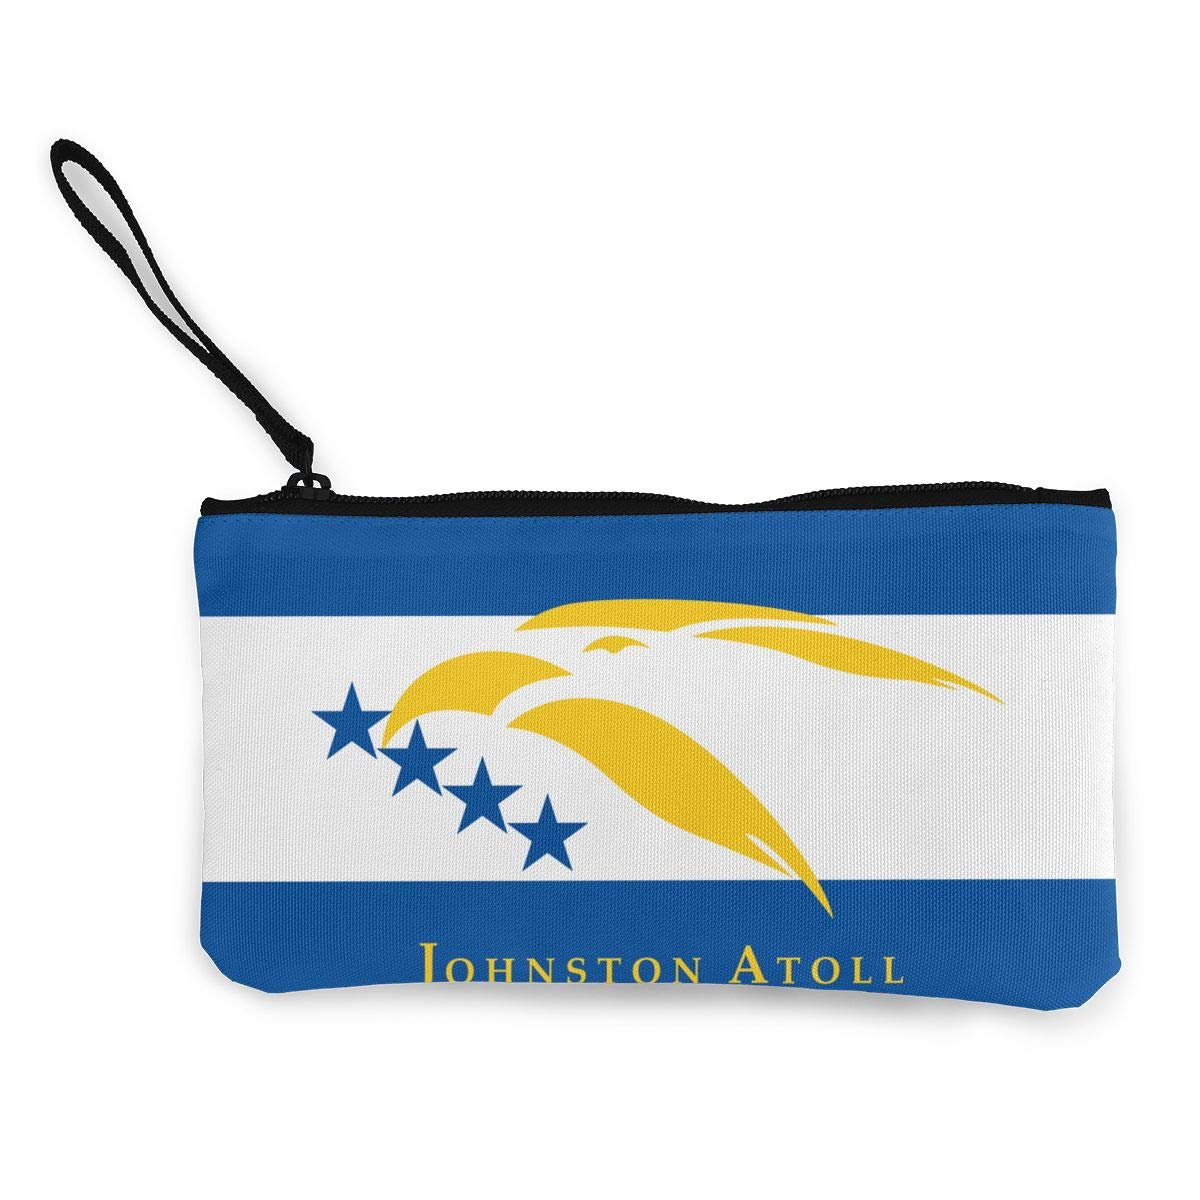 Cellphone Bag With Handle Make Up Bag DH14hjsdDEE Flag Of Johnston Atoll Zipper Canvas Coin Purse Wallet